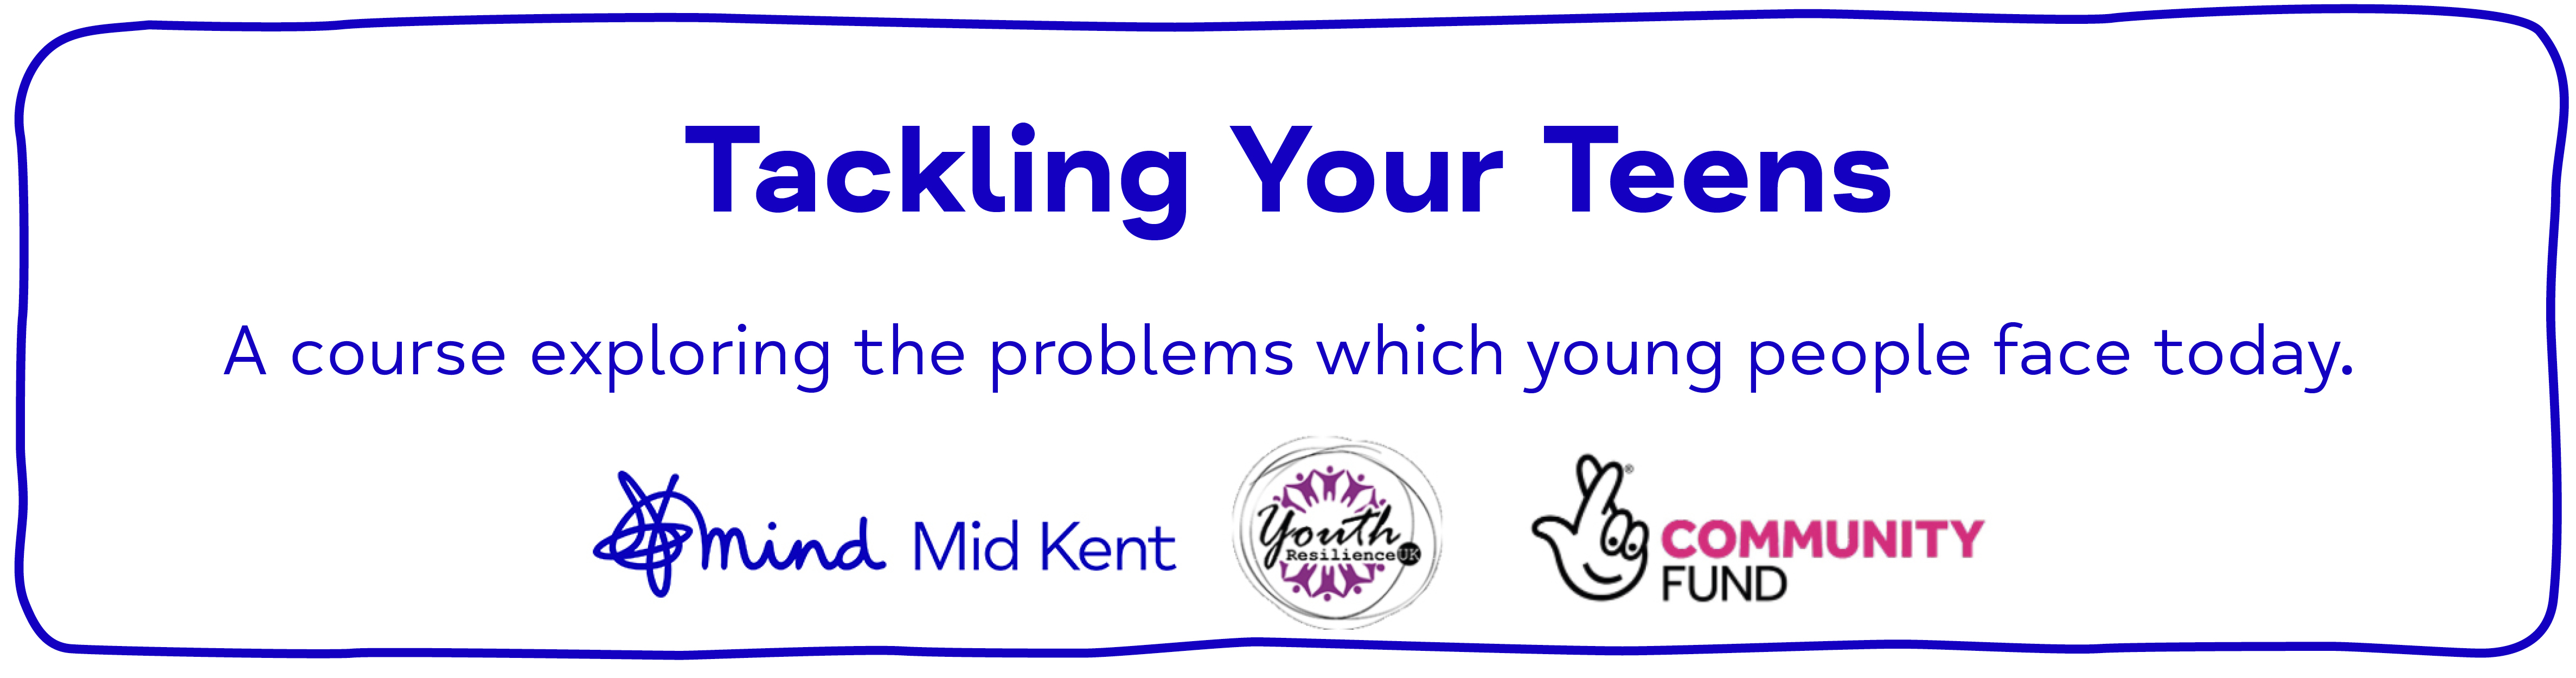 Tackling Your Teens A course exploring the problems which young people face today.